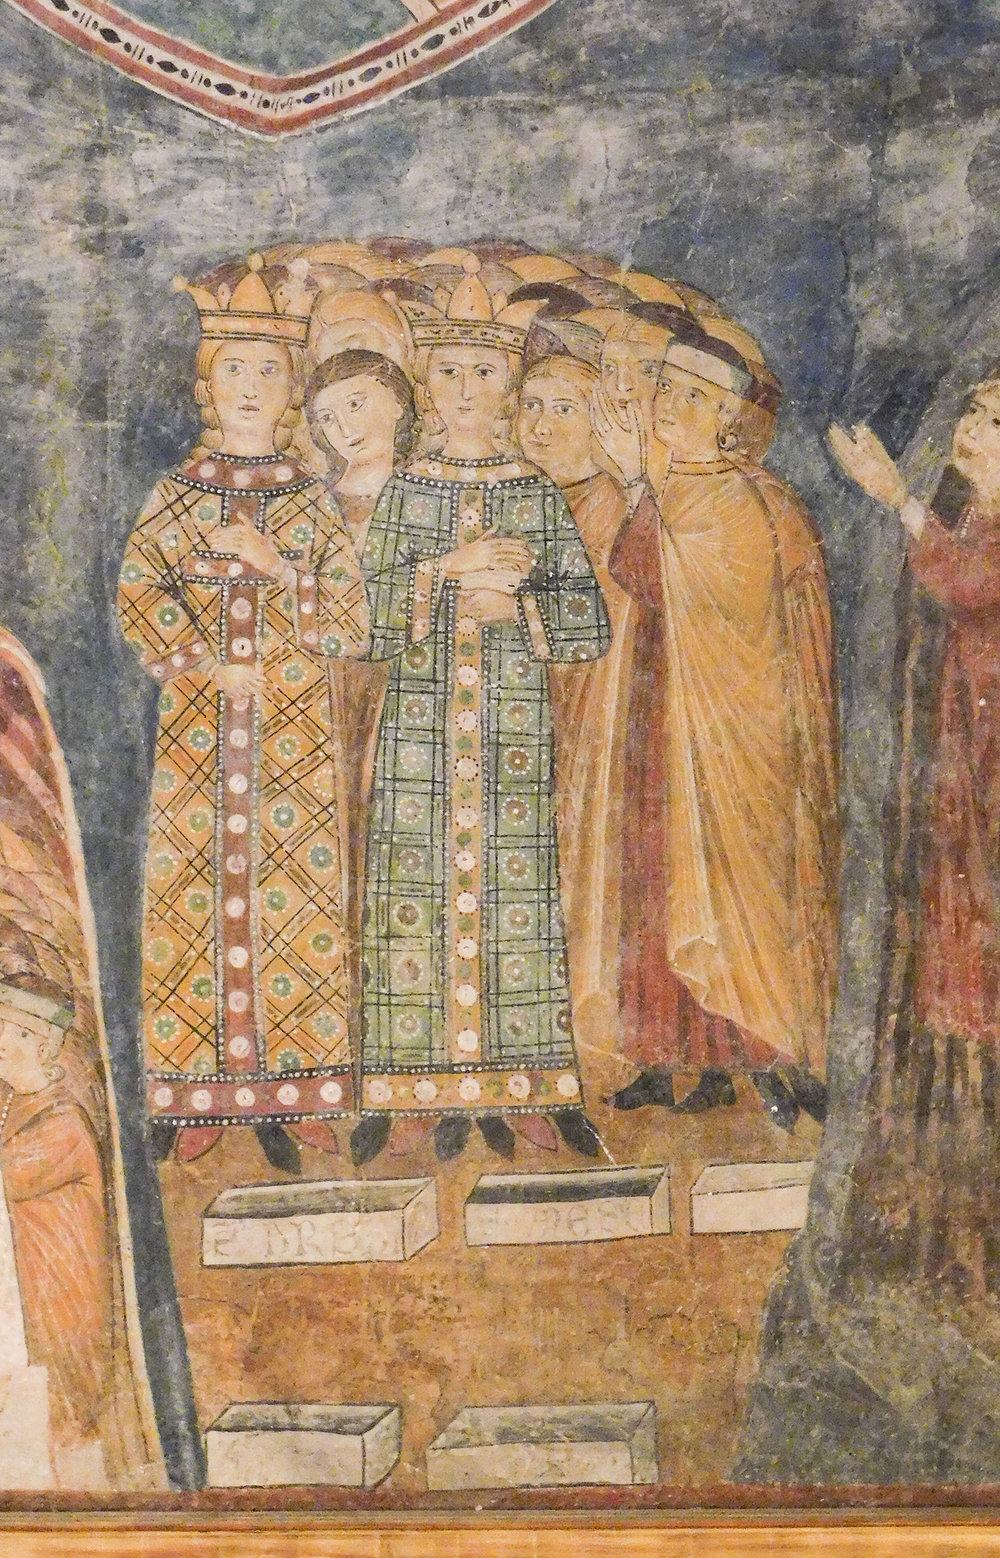 Figure 6. Detail of figure 2:  The Second Coming of Jesus —Saints (Ursula and Agnes?) leading souls to Mary. Photograph by Jonathan Kline.